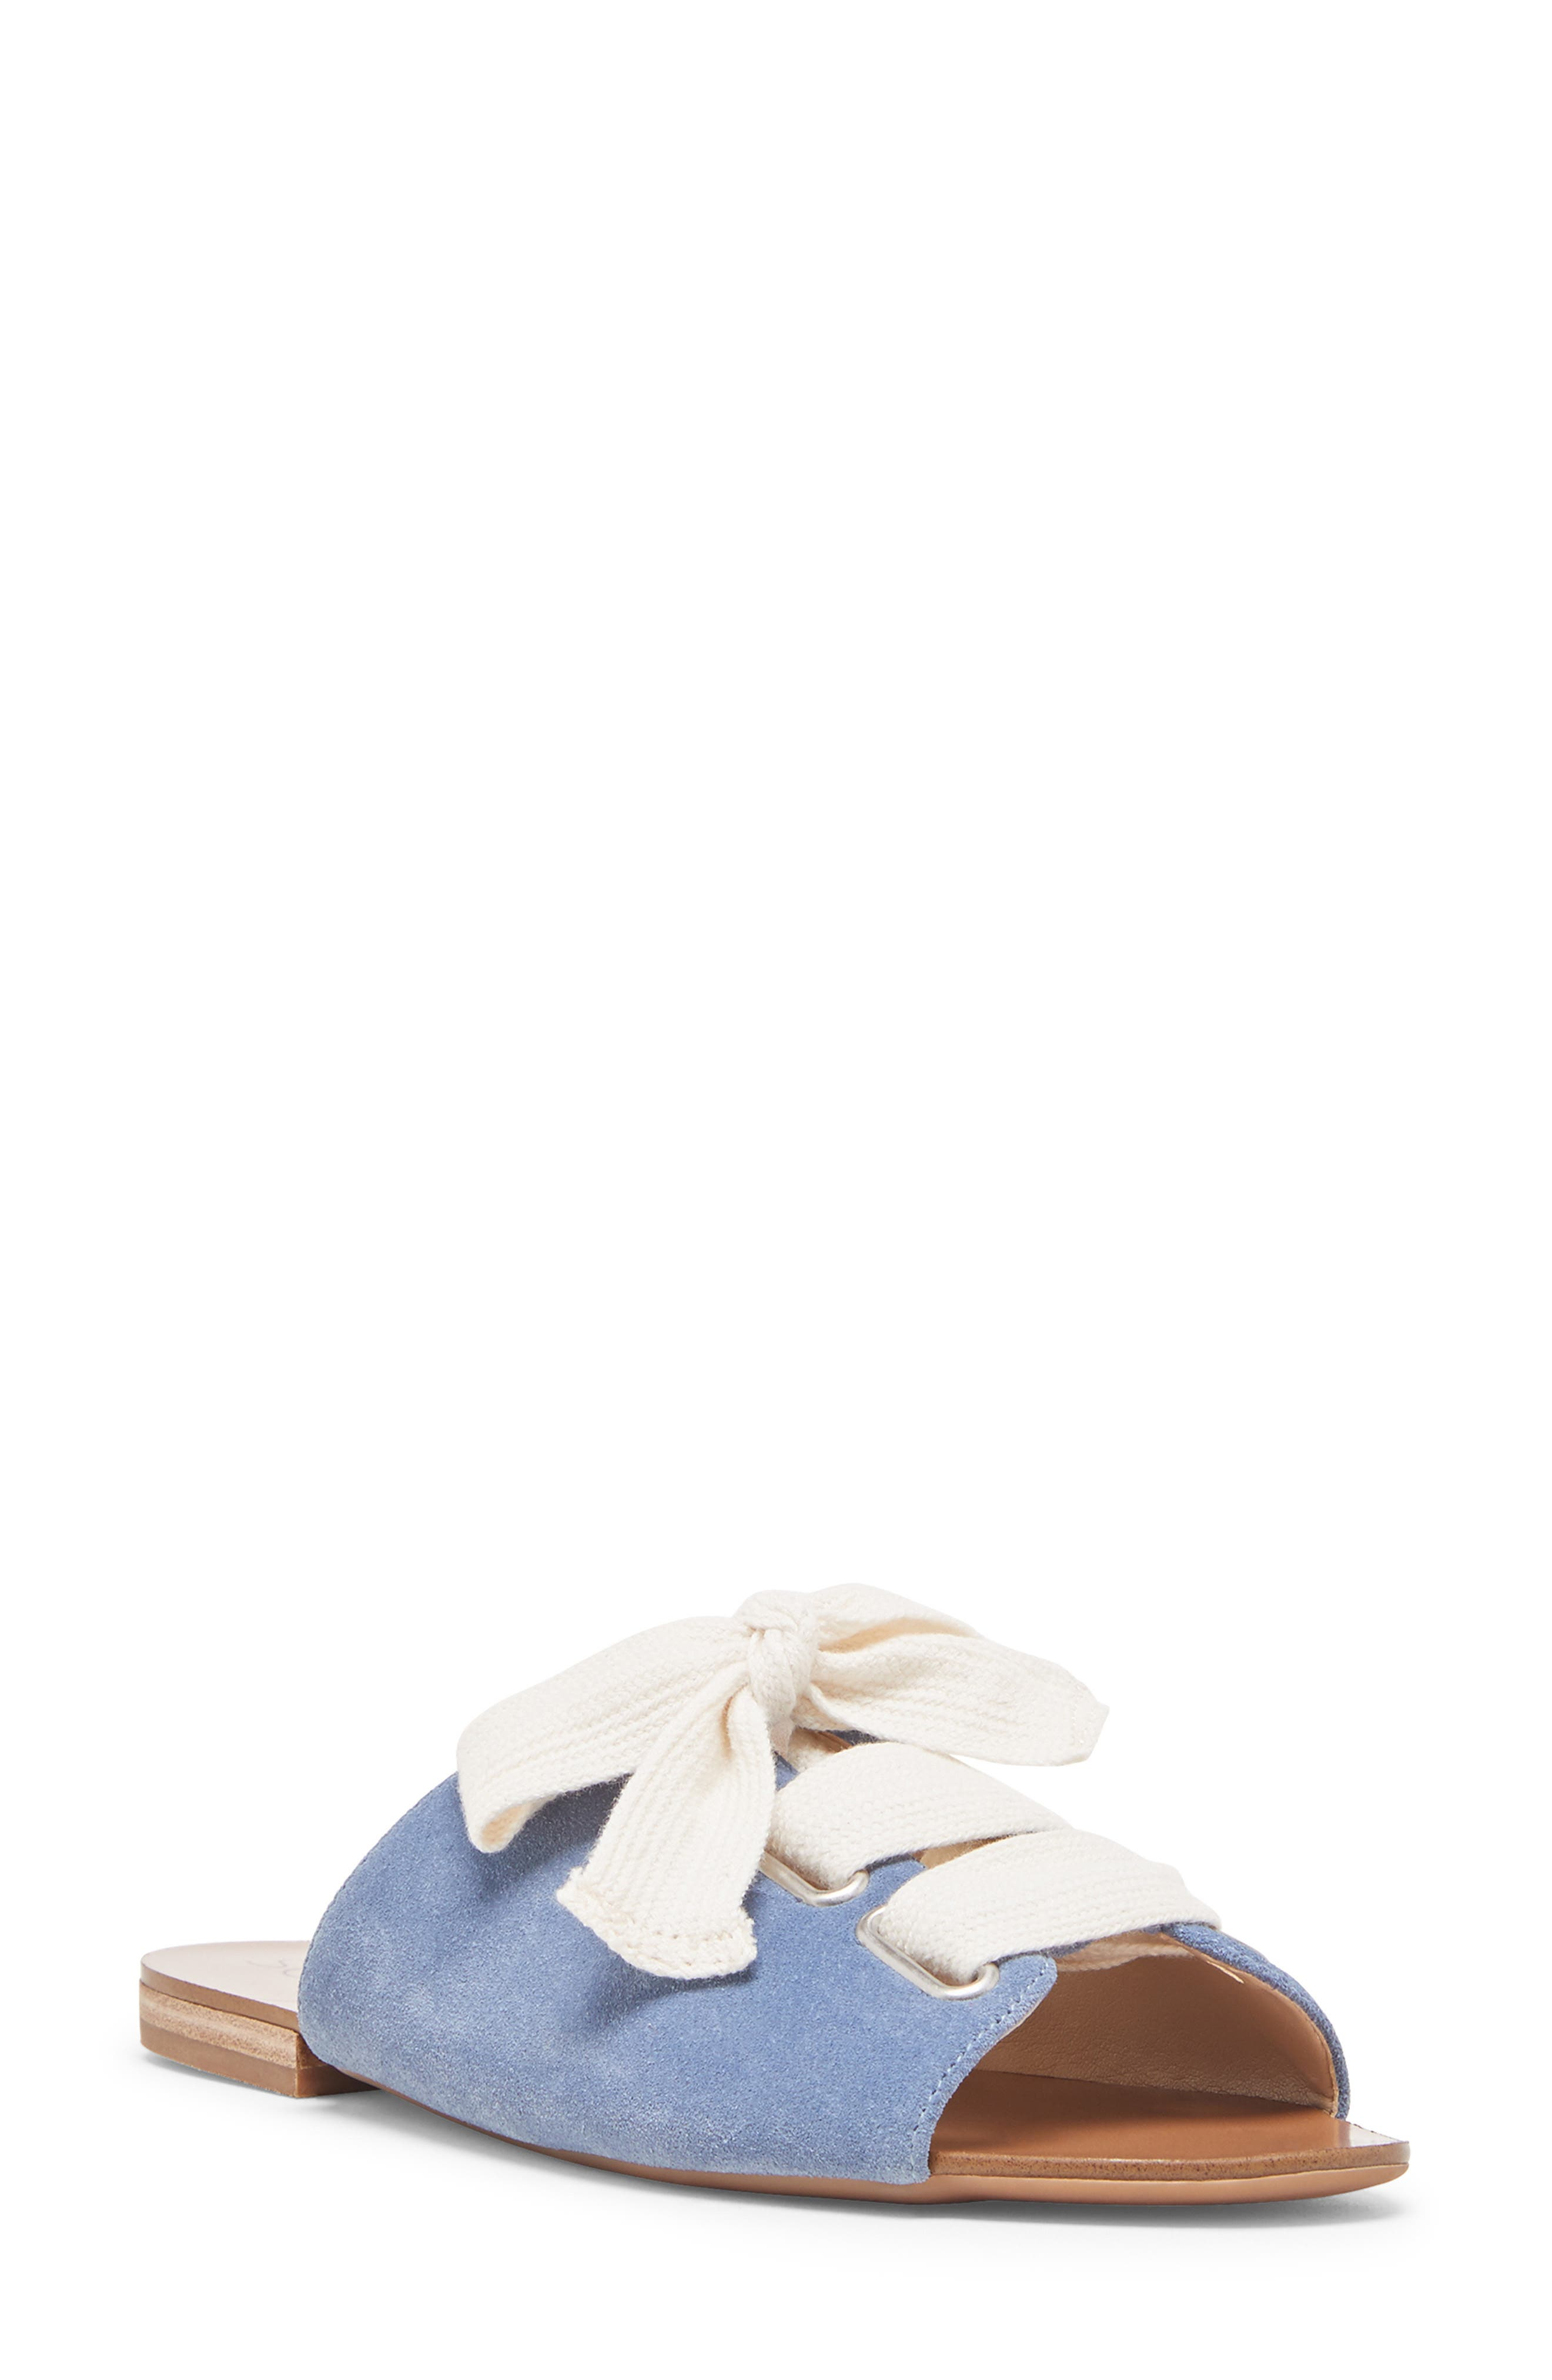 Women S Sole Society Sandals